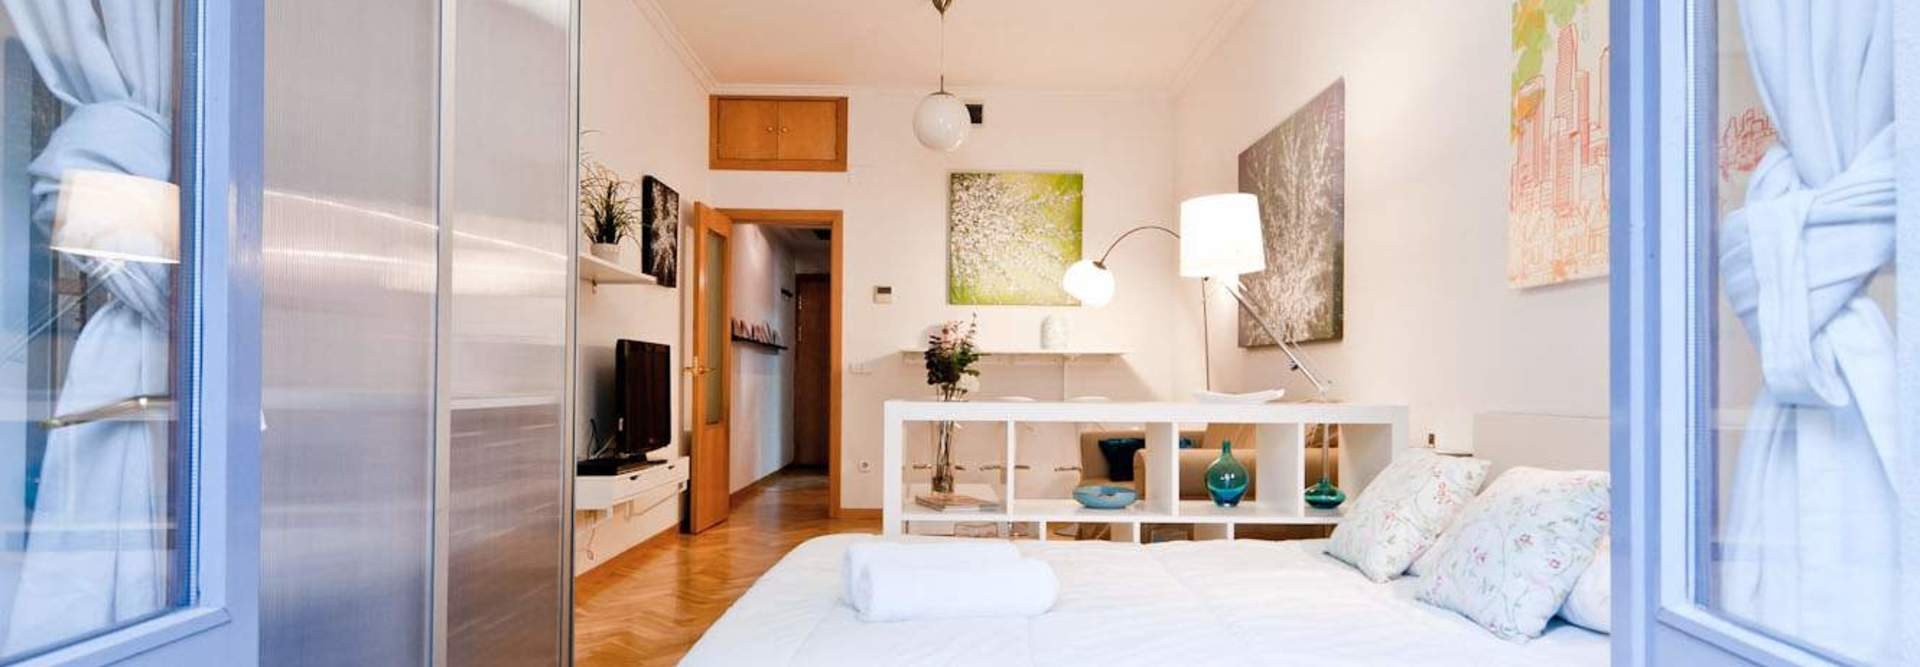 Home alquiler apartamento madrid centro mad4rent  33